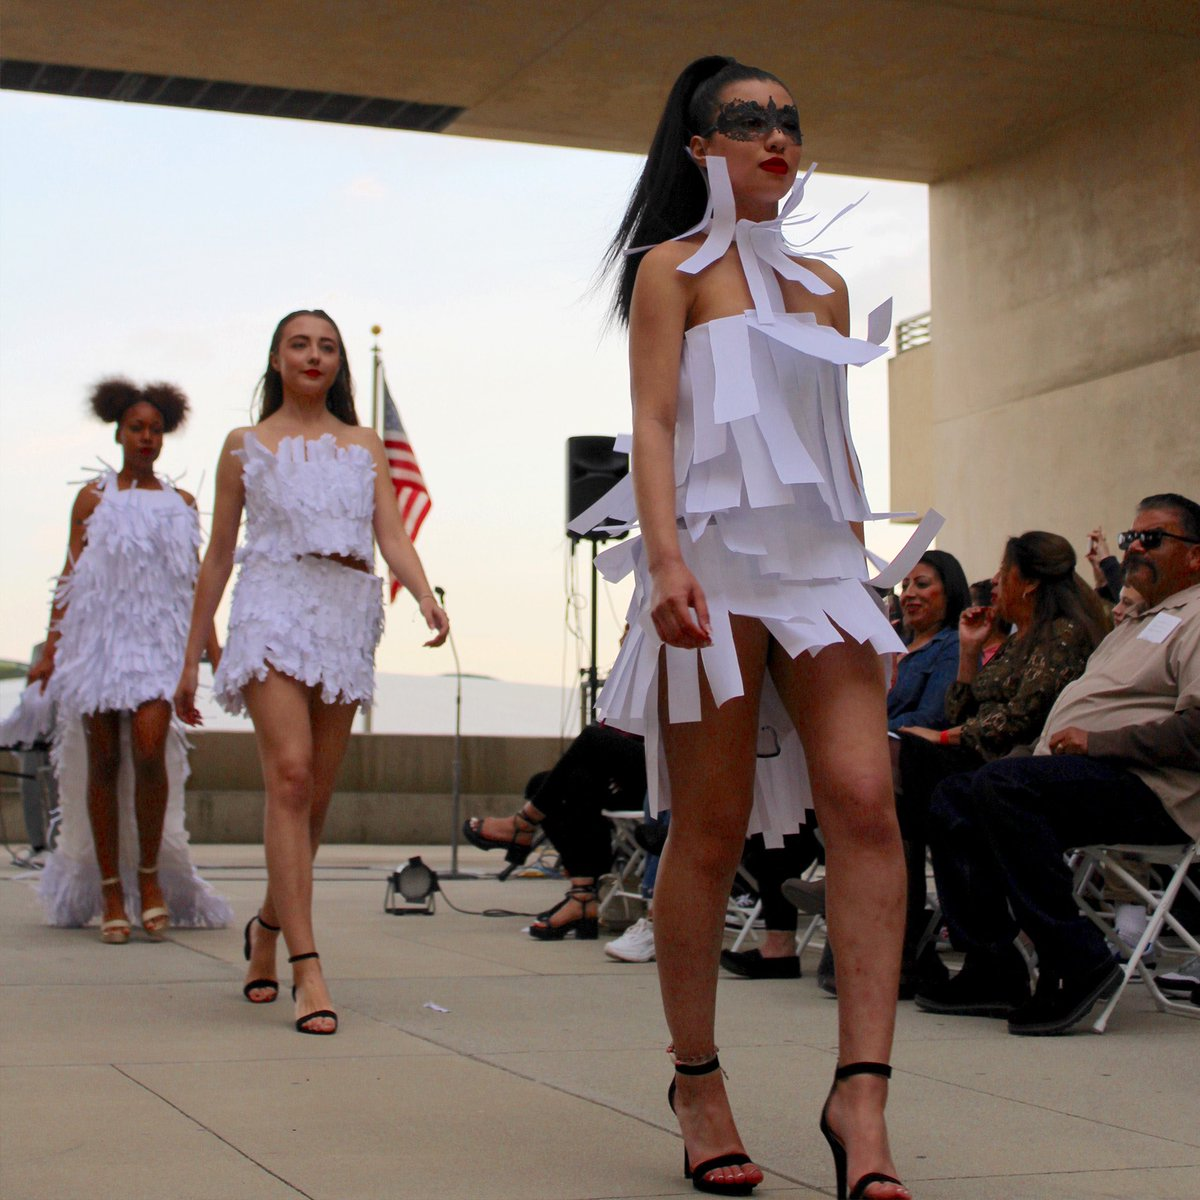 Cal Poly Pomona Aep On Twitter The Fashion Society S Ninth Annual Fashion Show Held Last Week Featured Designs From Students In The Apparel Merchandising Management Program The Production Is Designed For